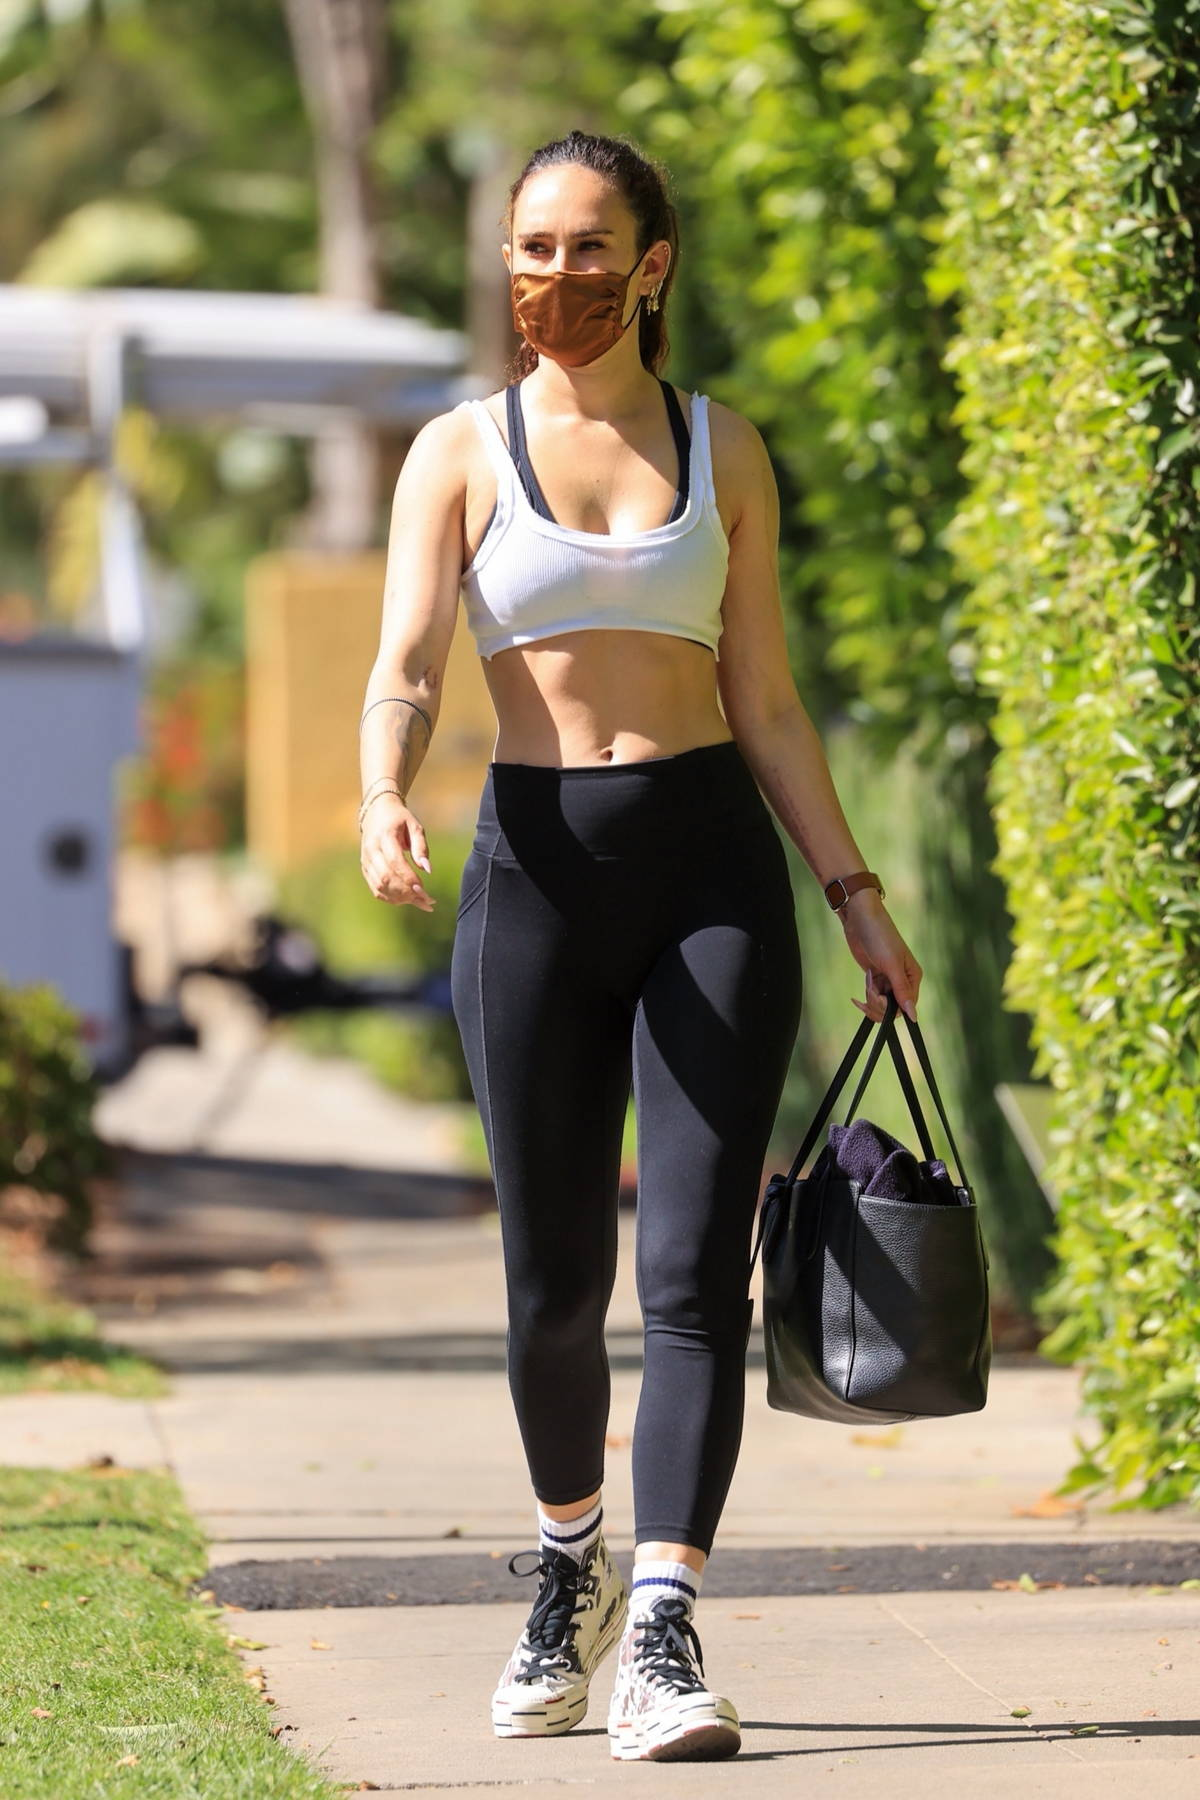 Rumer Willis flashes her abs in a crop top and leggings as she hits her Pilates class in West Hollywood, California